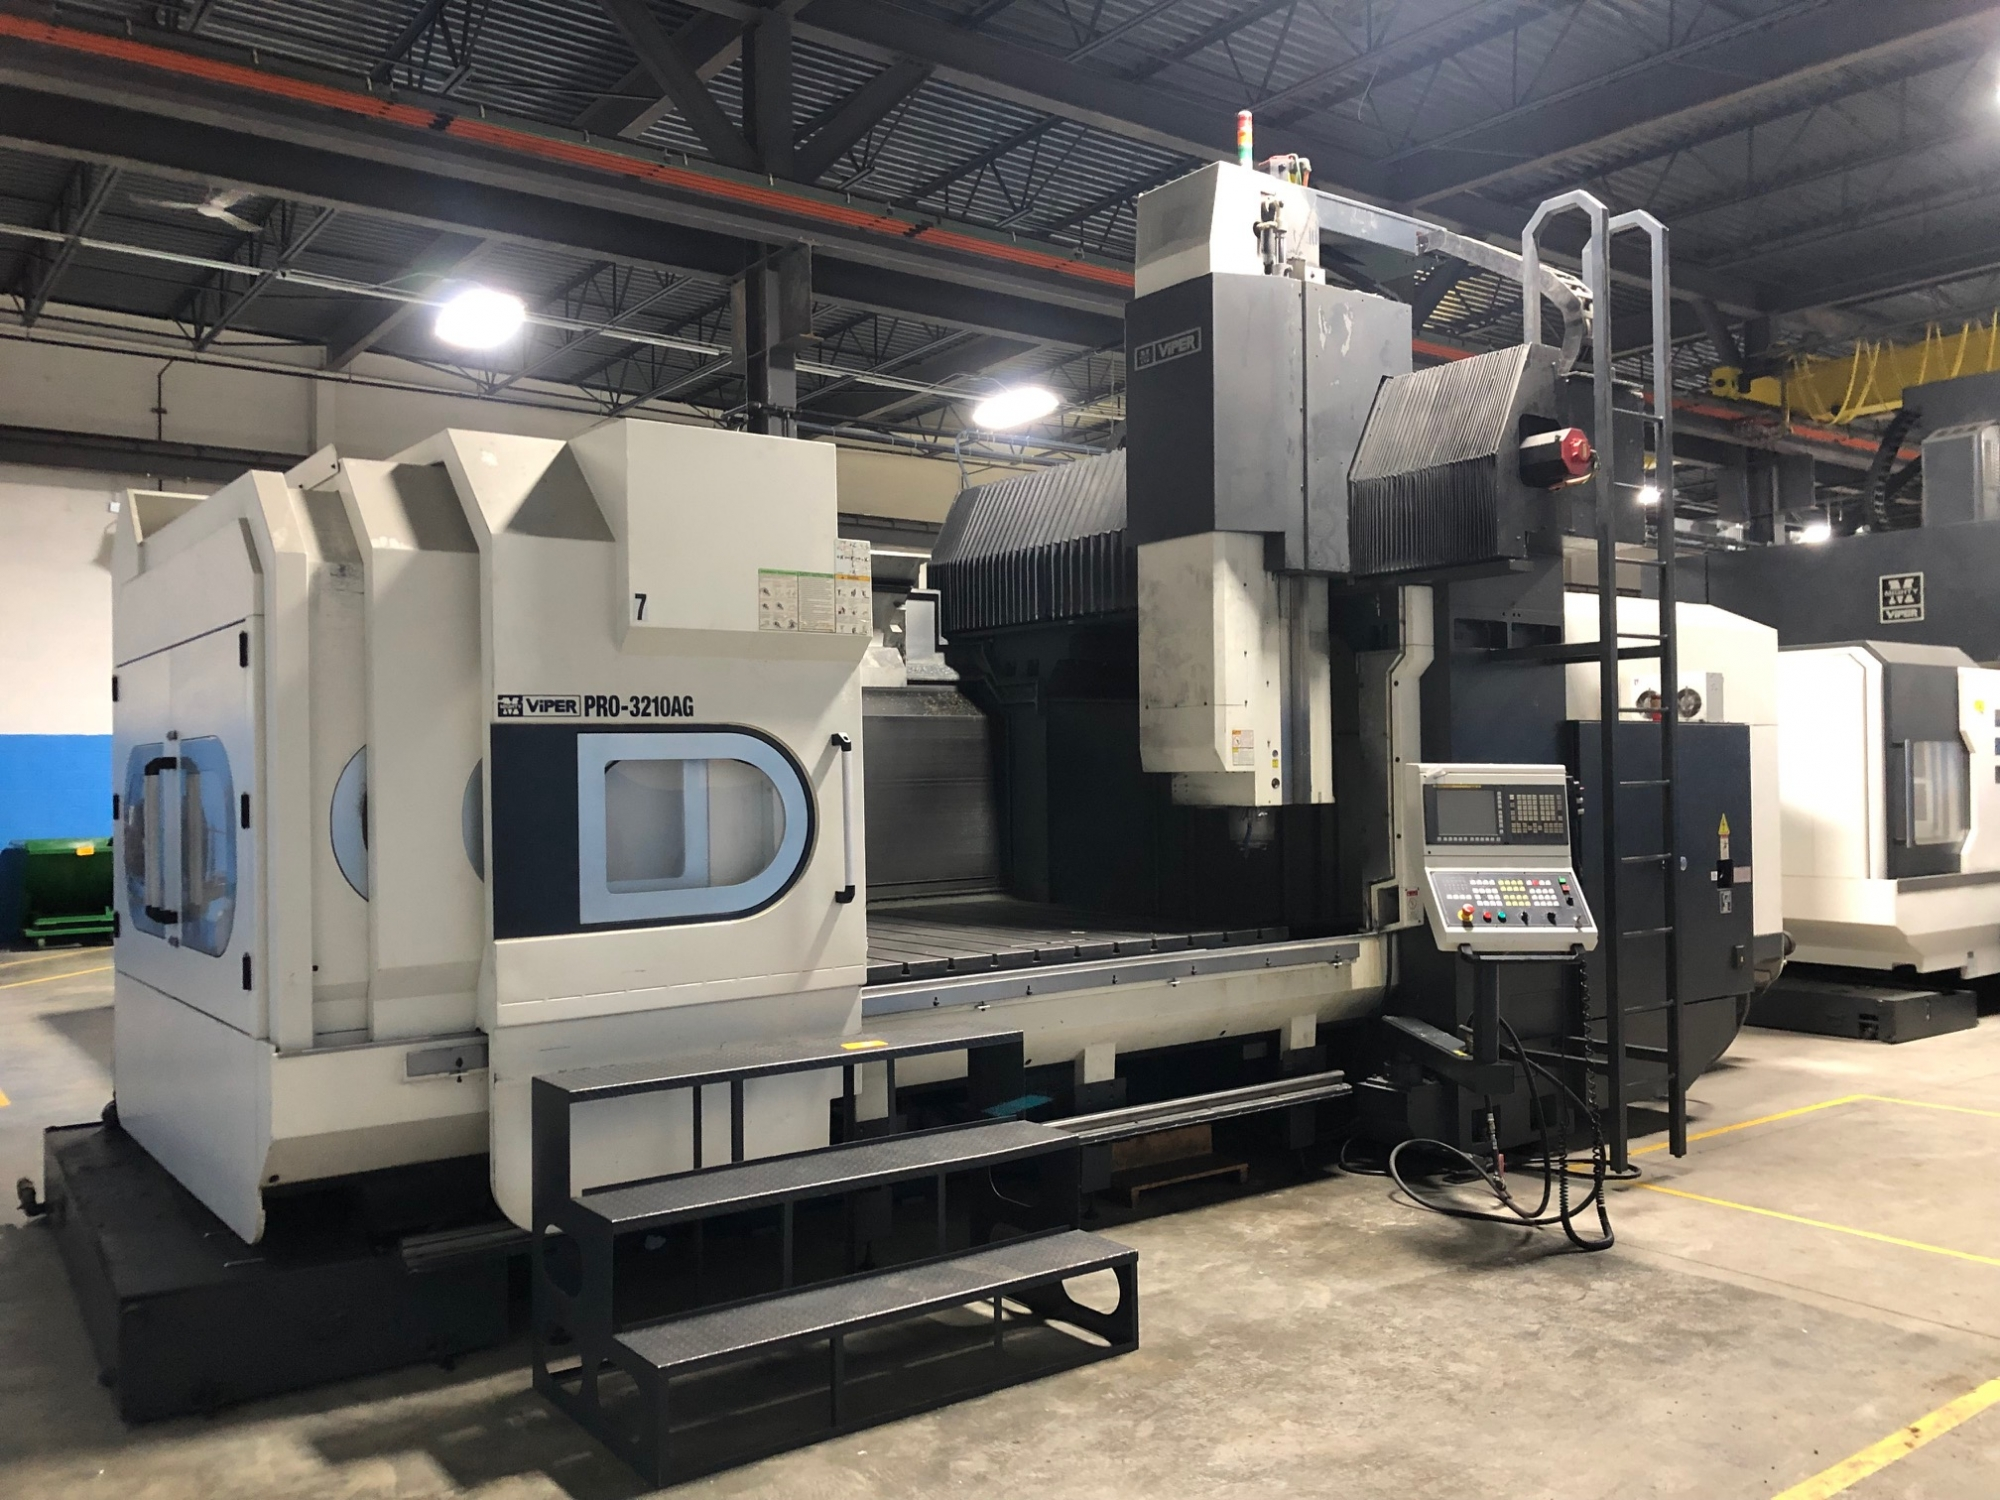 2012 MIGHTY VIPER Pro-3210AG - CNC Bridge Mill